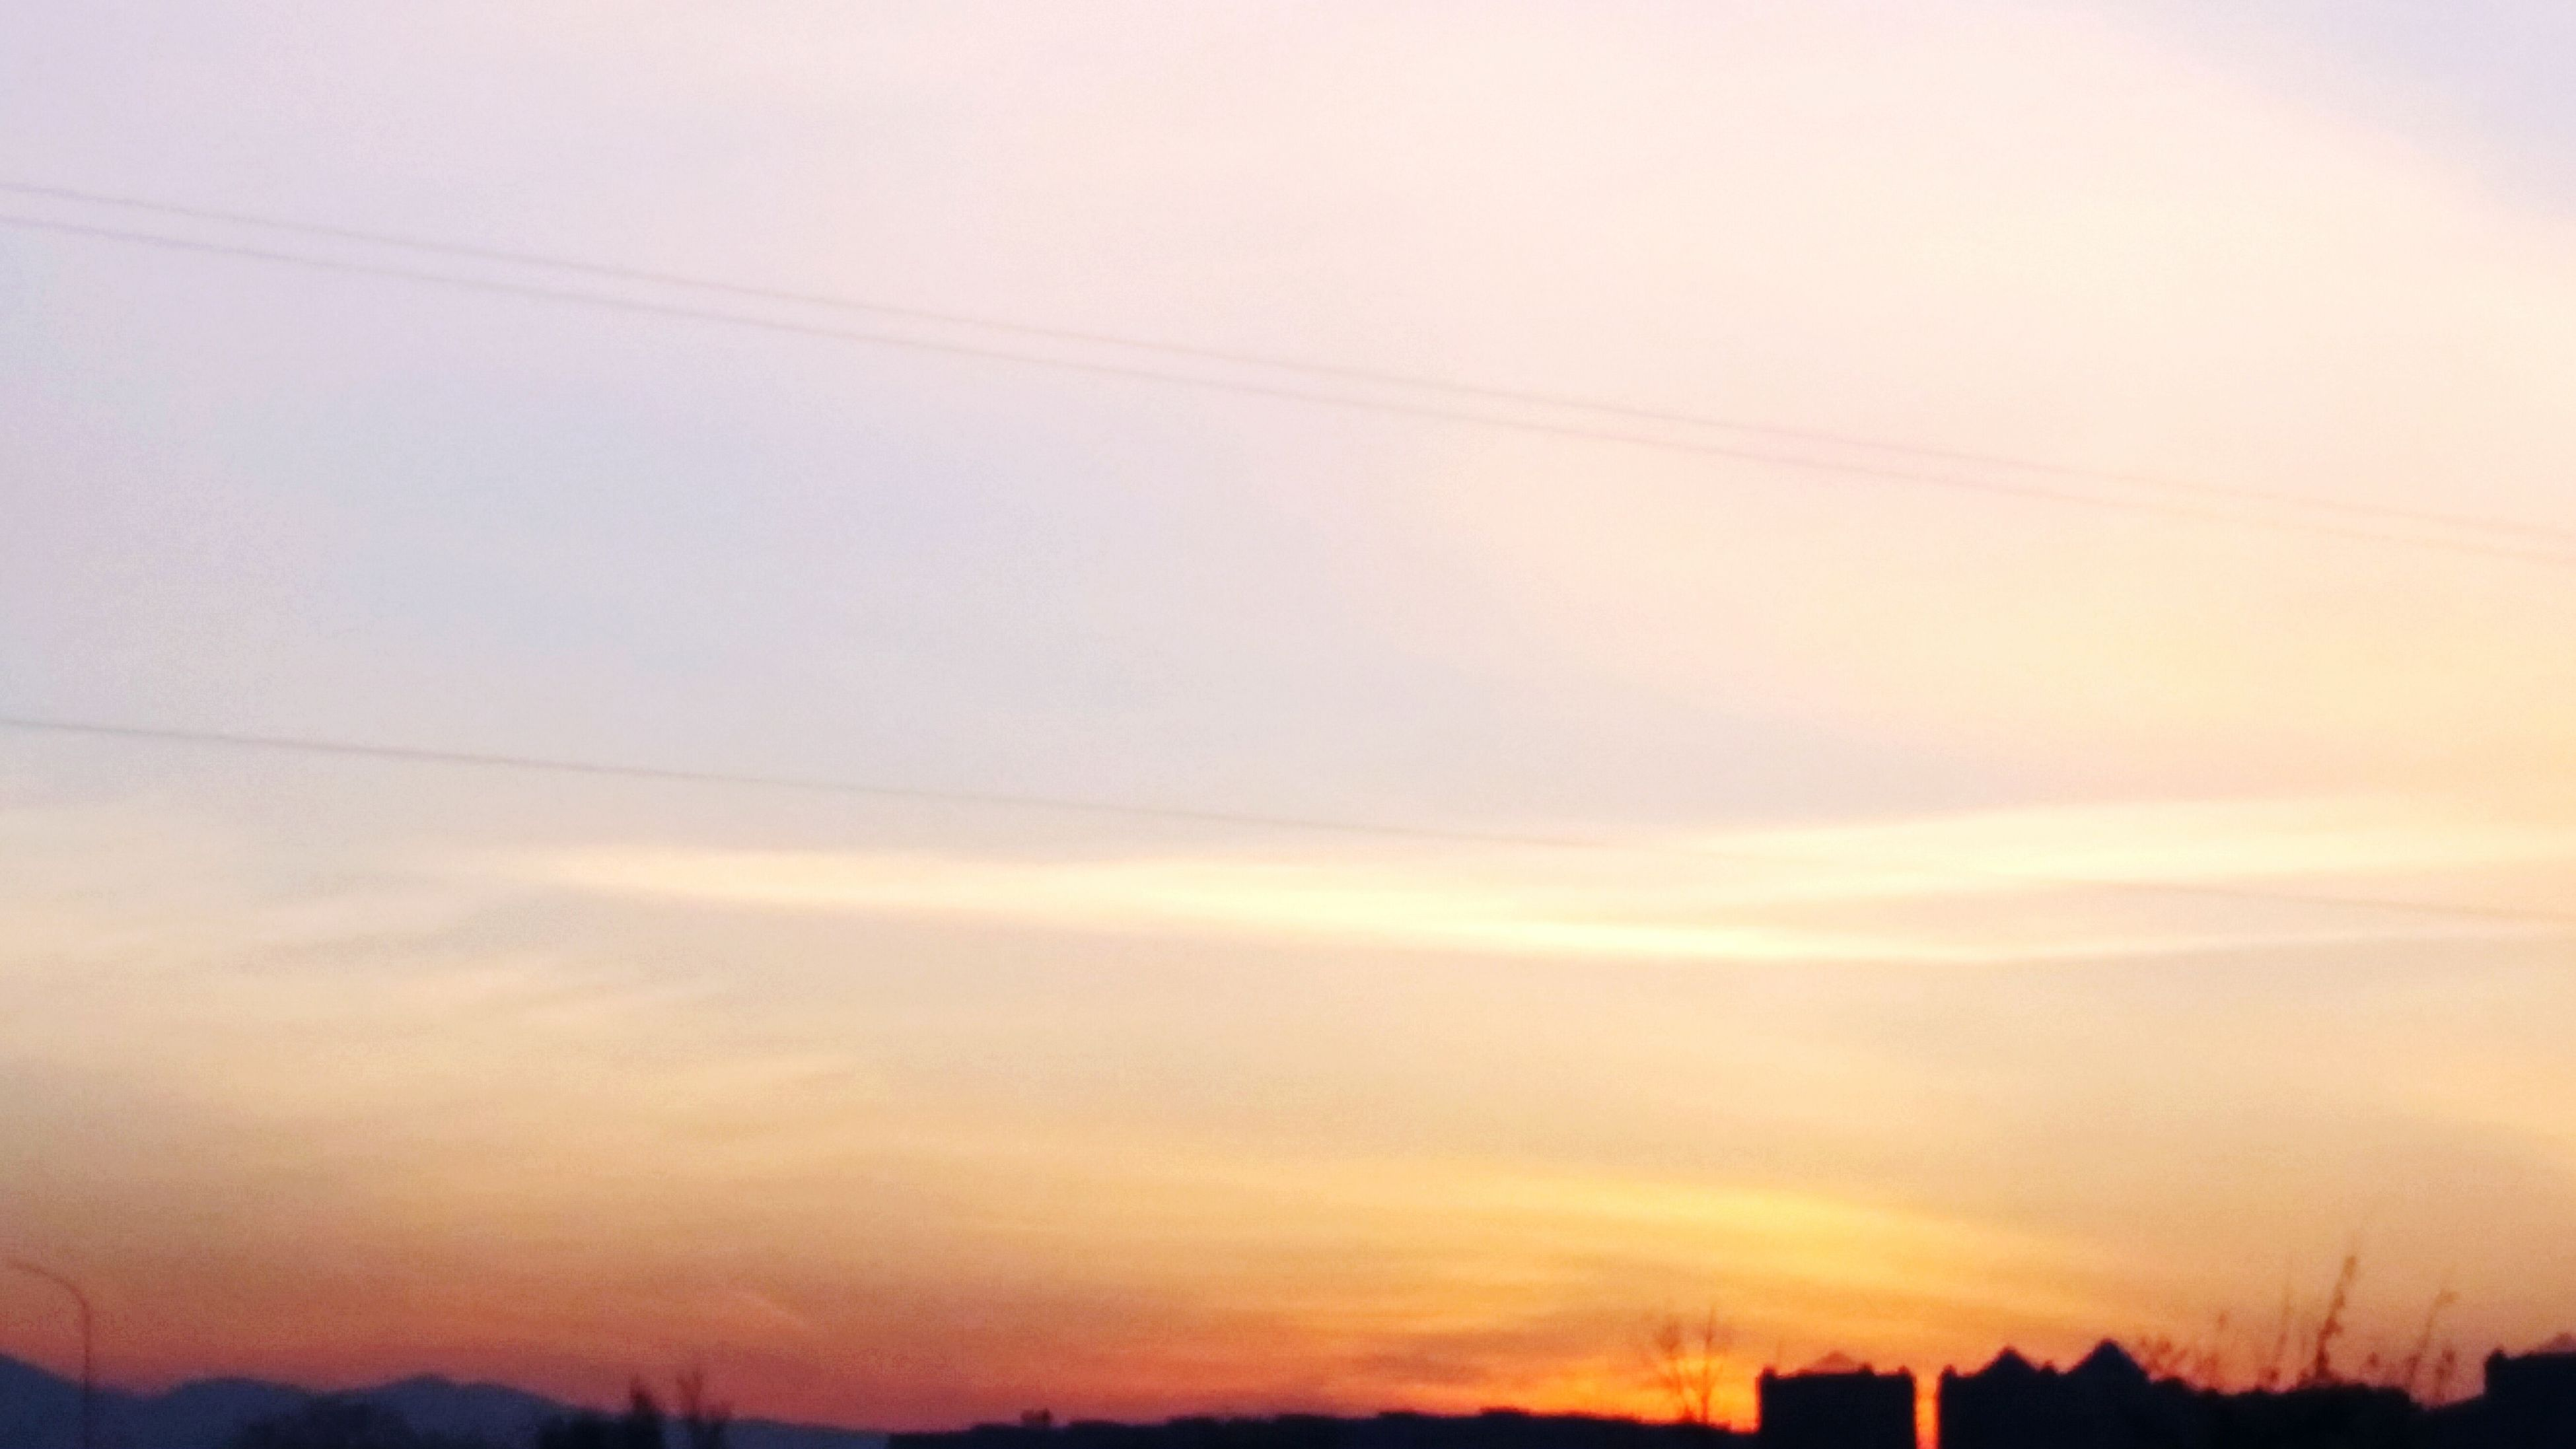 sunset, power line, silhouette, sky, scenics, electricity pylon, tranquil scene, tranquility, beauty in nature, orange color, cable, electricity, power supply, nature, low angle view, connection, landscape, idyllic, outdoors, no people